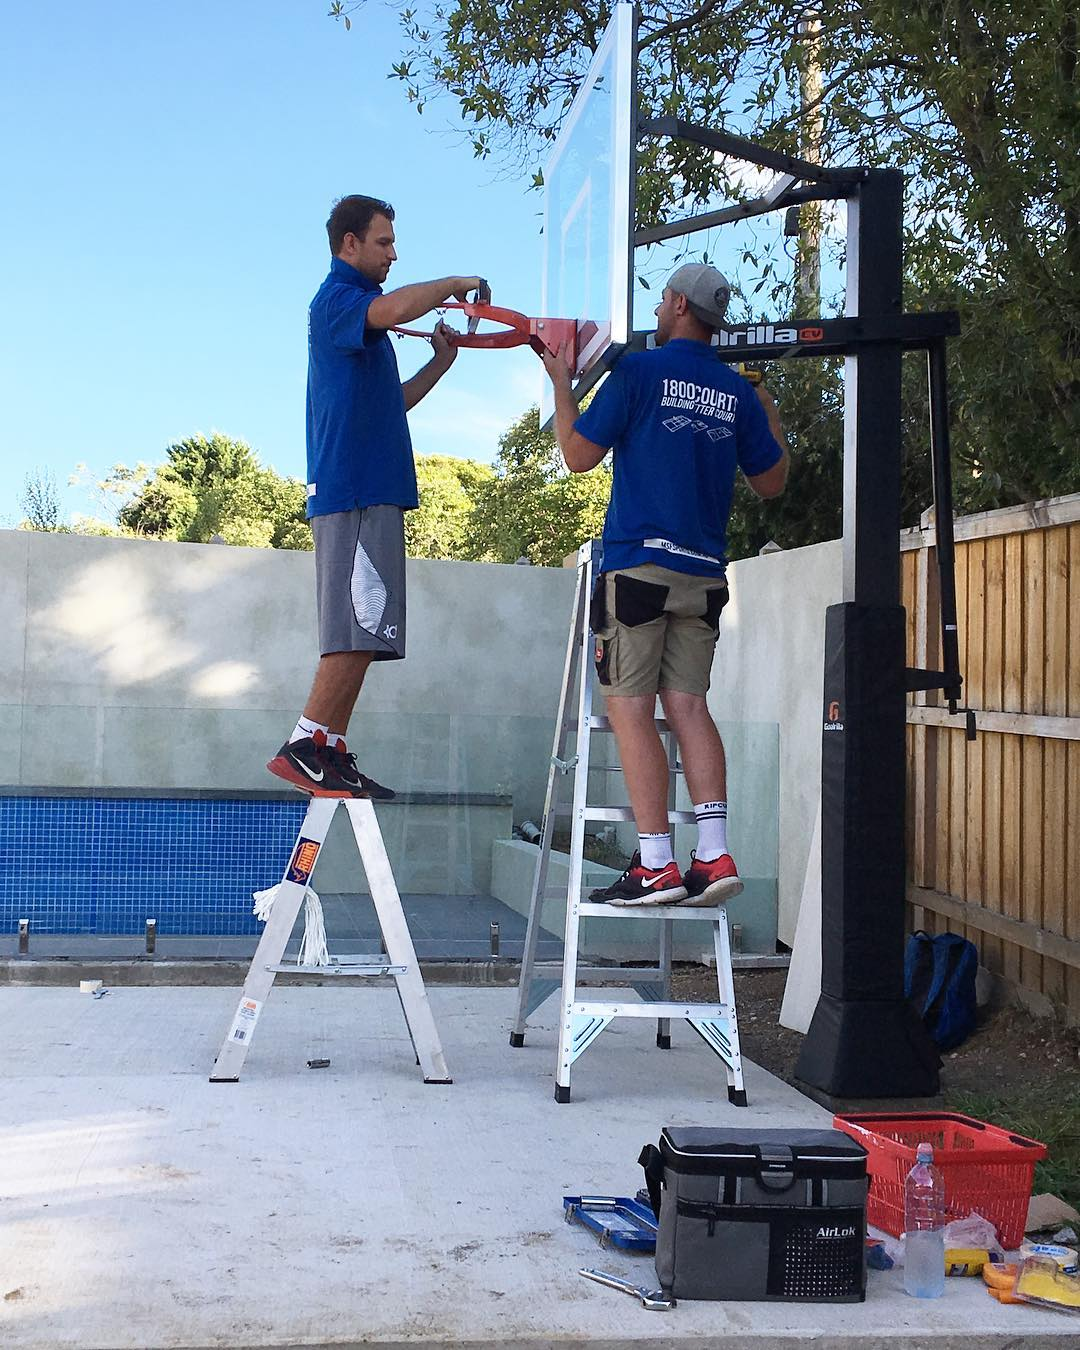 MSF Sports Basketball Court Installation - Call 1800 COURTS